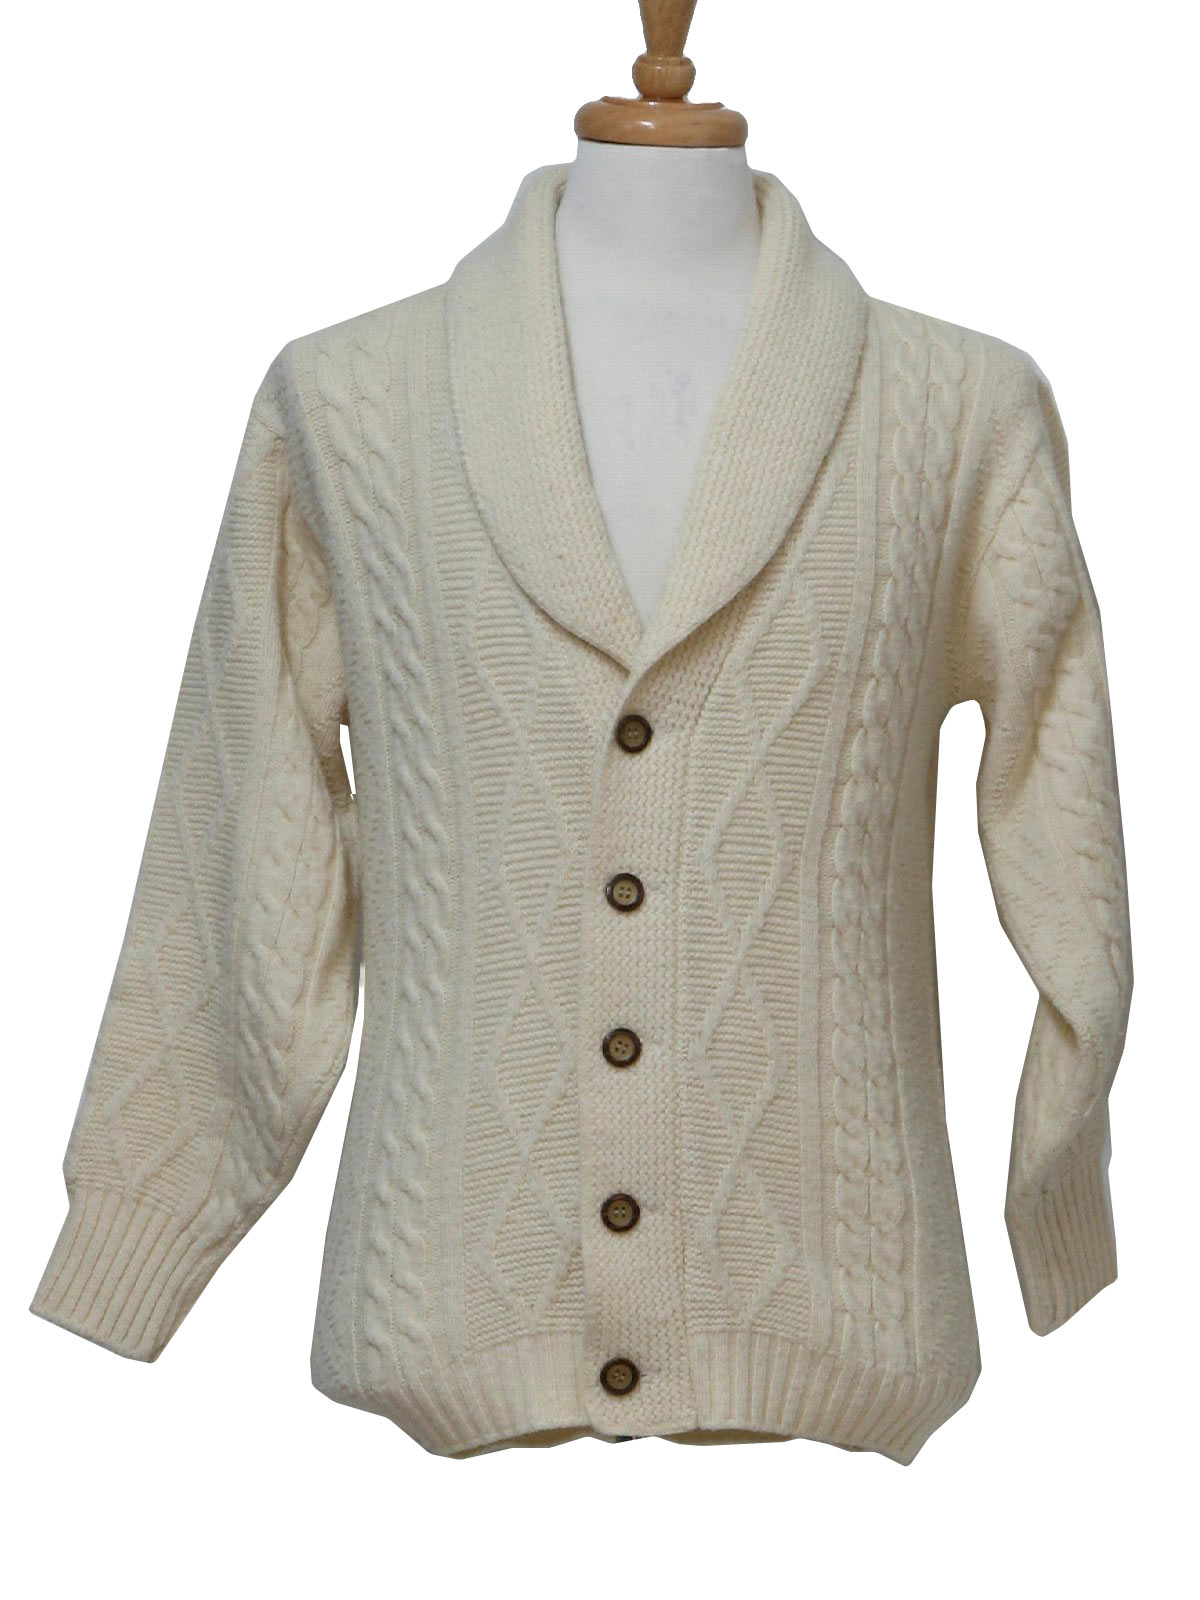 Pebble Beach Seventies Vintage Caridgan Sweater: 70s -Pebble Beach ...